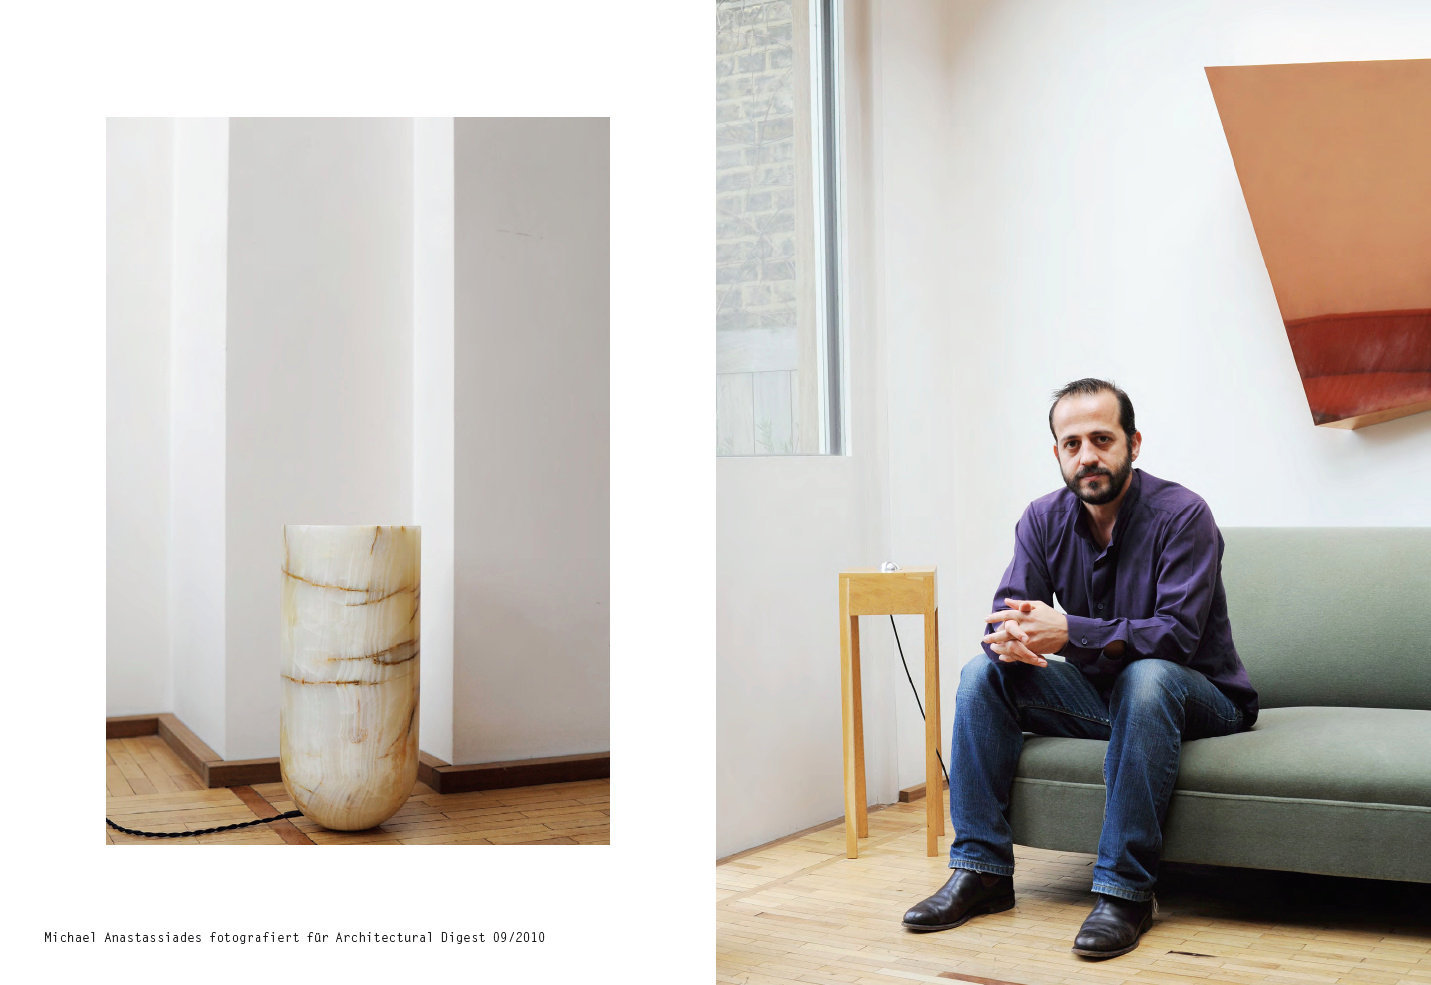 Michael Anastassiades for Architectural Digest